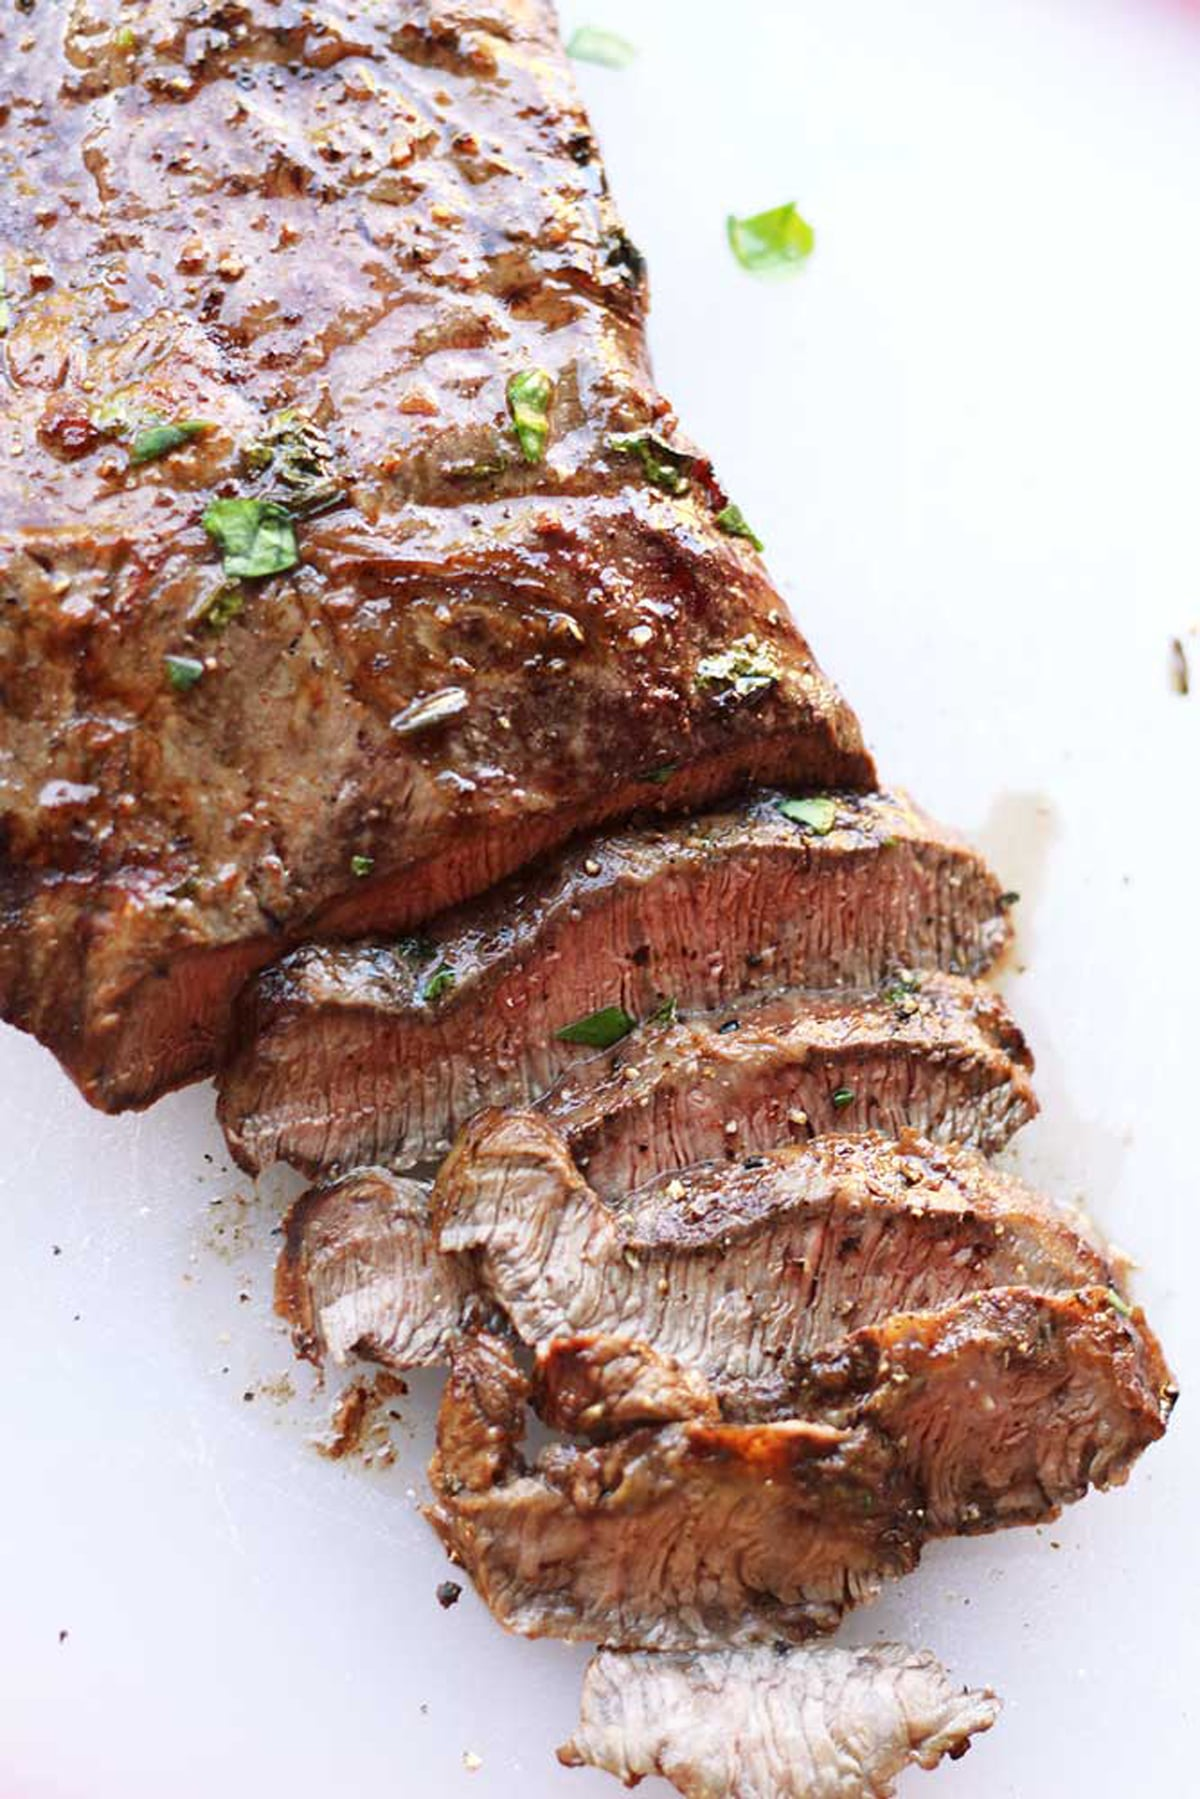 Sliced marinated flank steak sitting on a white table, topped with fresh parsley and fresh ground pepper.